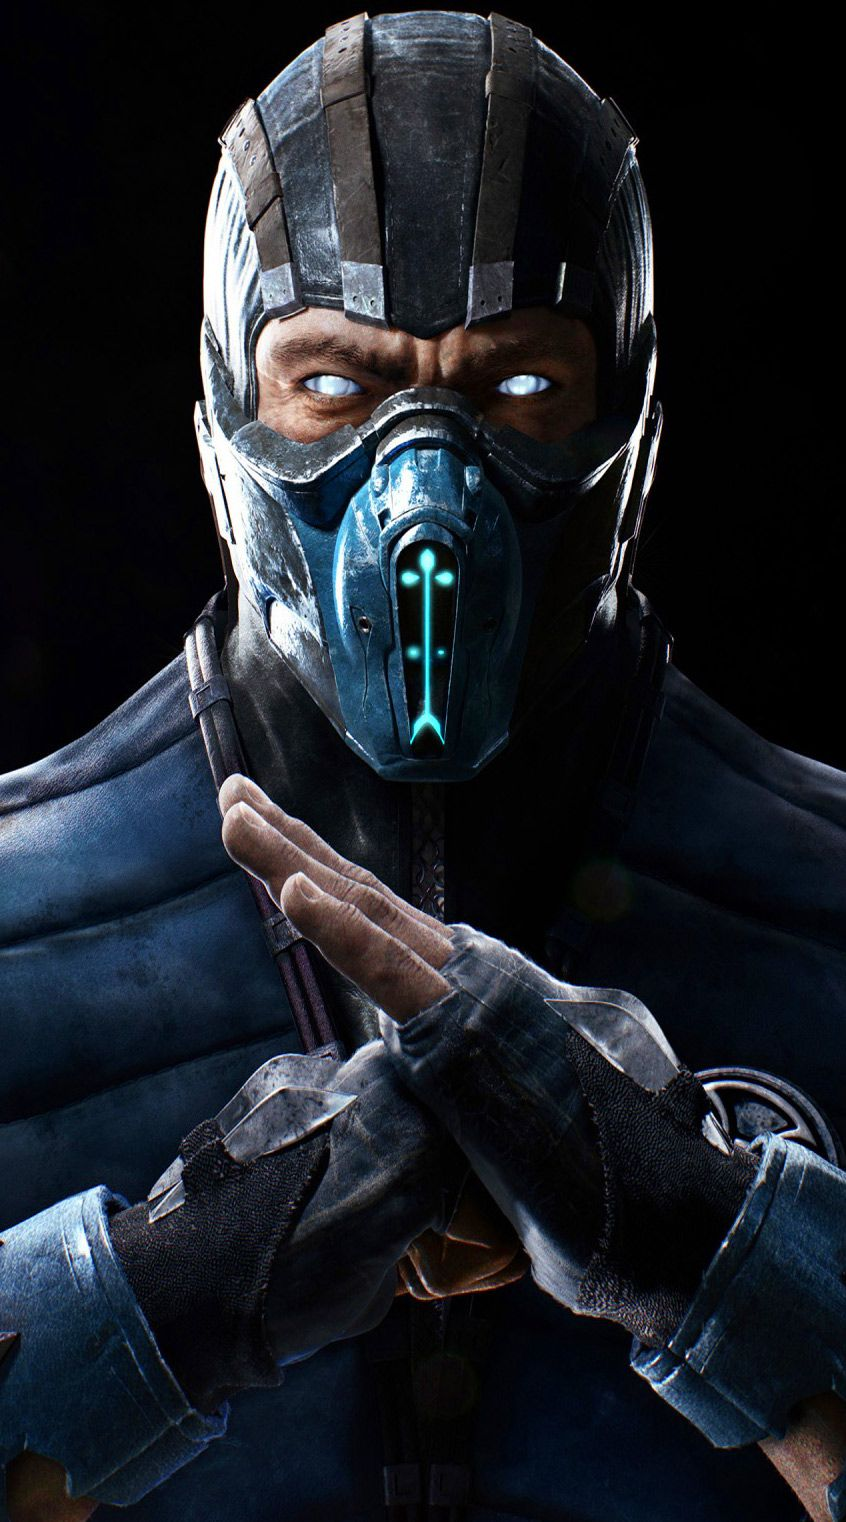 Sub Zero Mortal Kombat X Game HD Widescreen Wallpapers